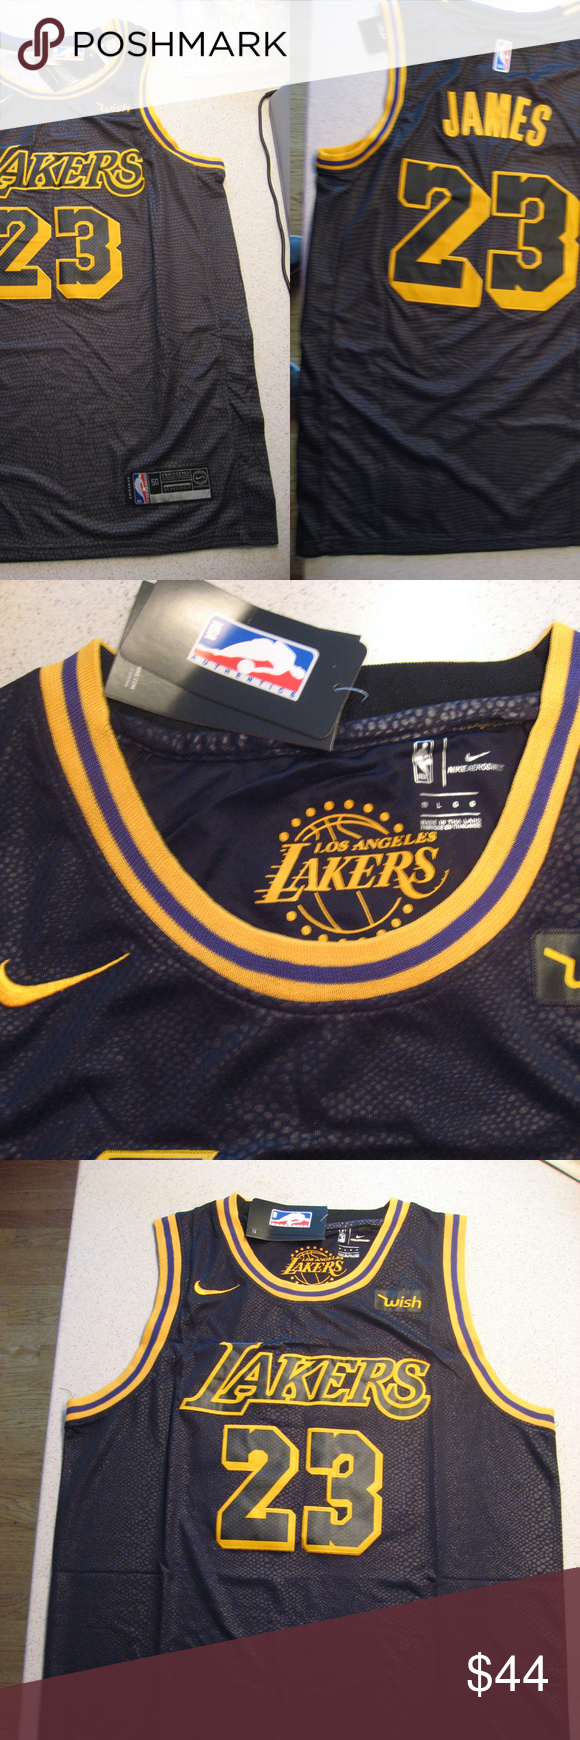 low priced ac3fa 9a010 Lebron James Lakers Black Swingman Wish Jersey New Lebron ...